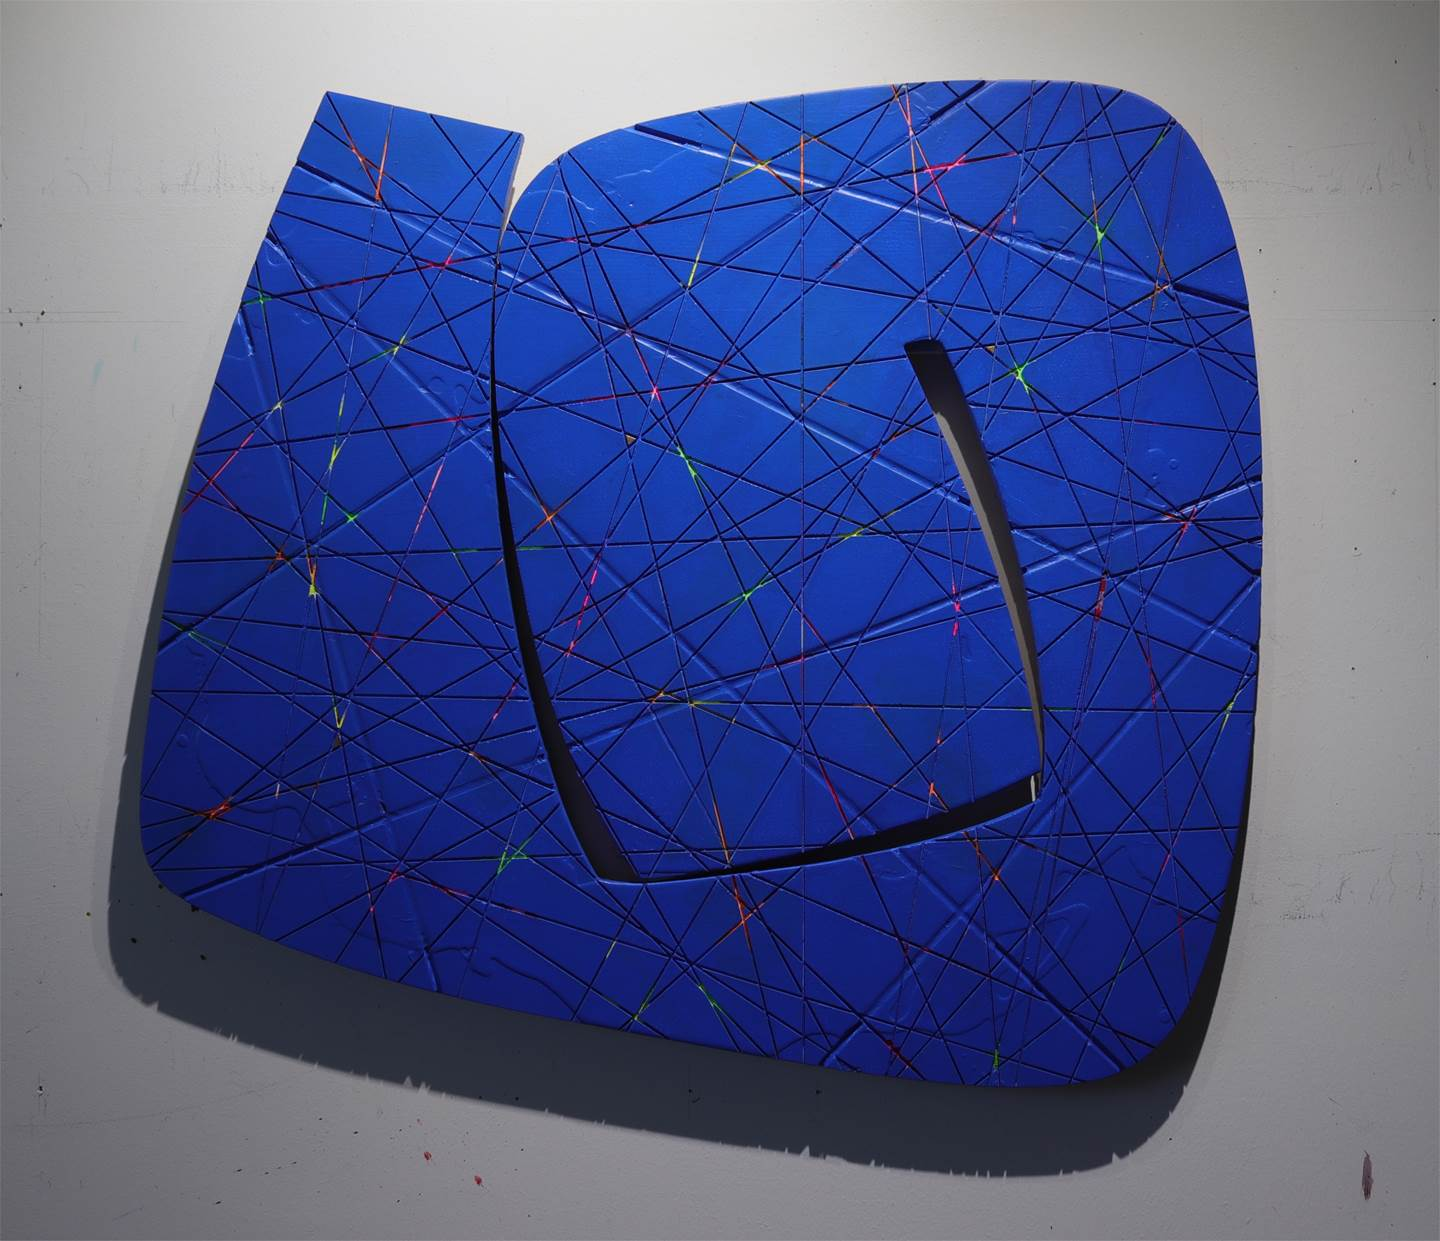 Constellation #1, original Abstract Acrylic Sculpture by Yury  Darashkevich